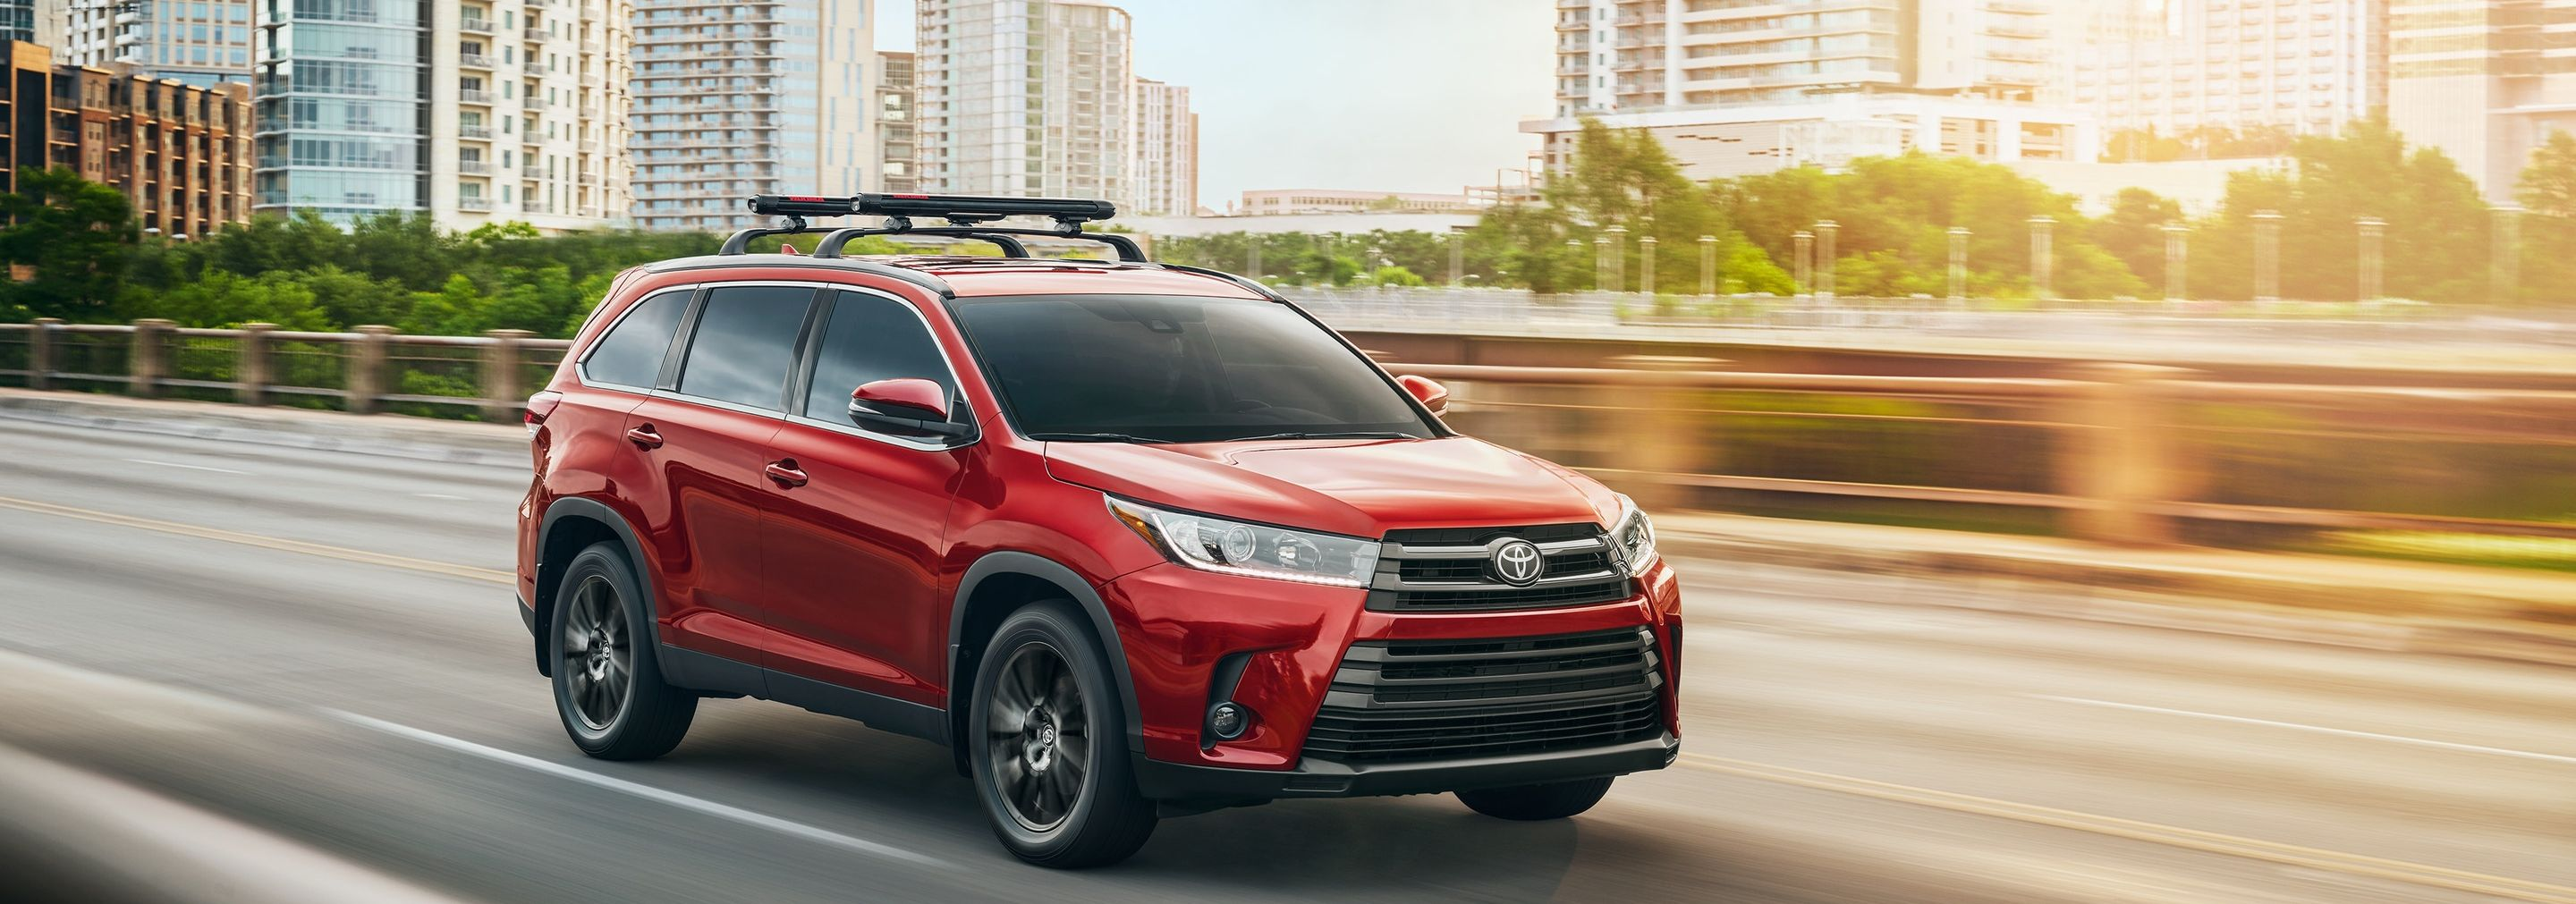 2019 Toyota Highlander for Sale near Columbia, MO